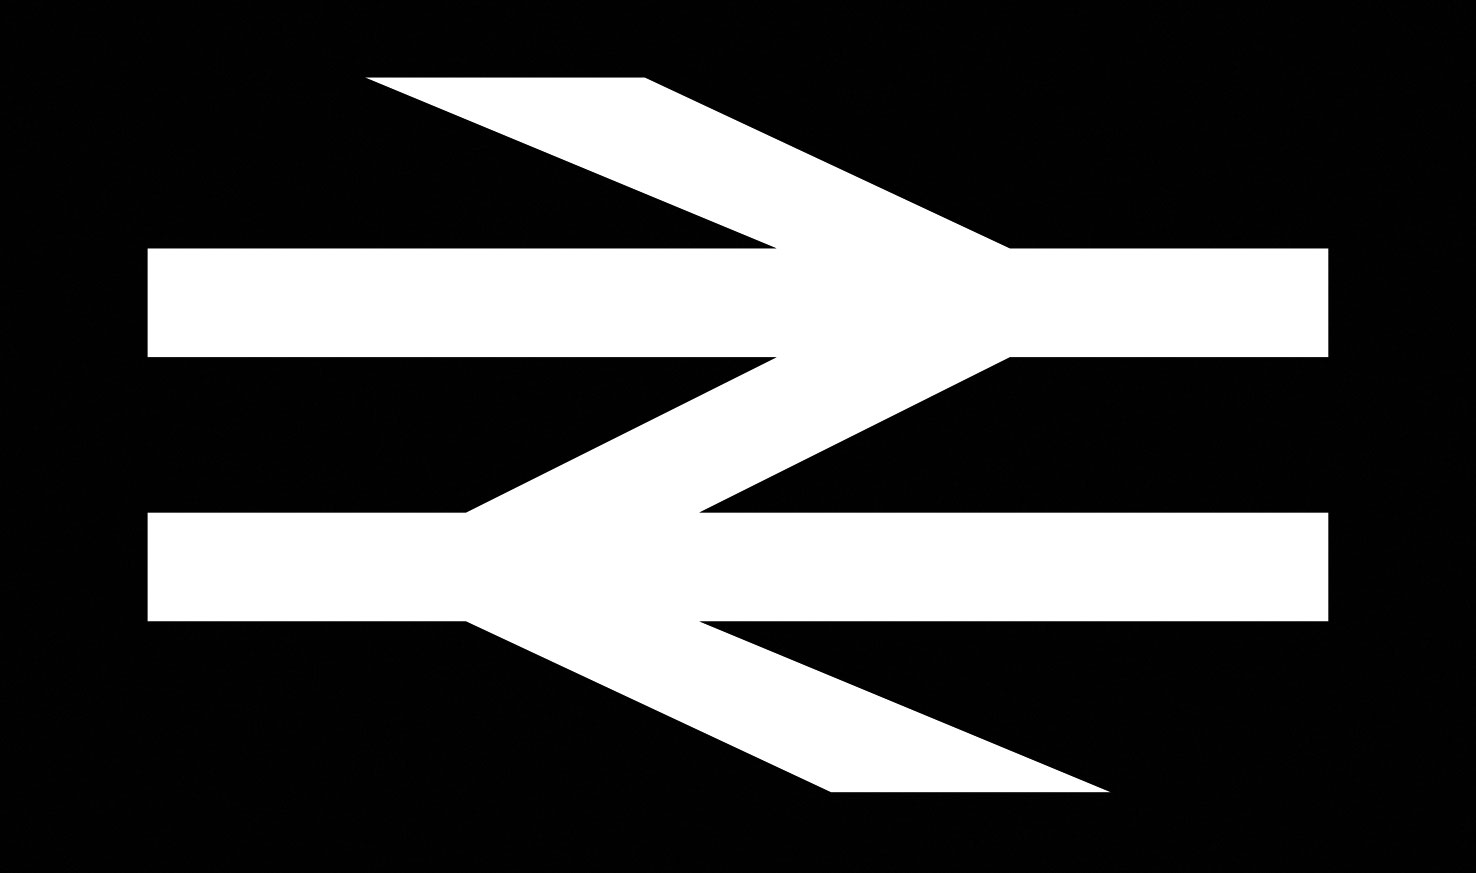 British Railways – identité